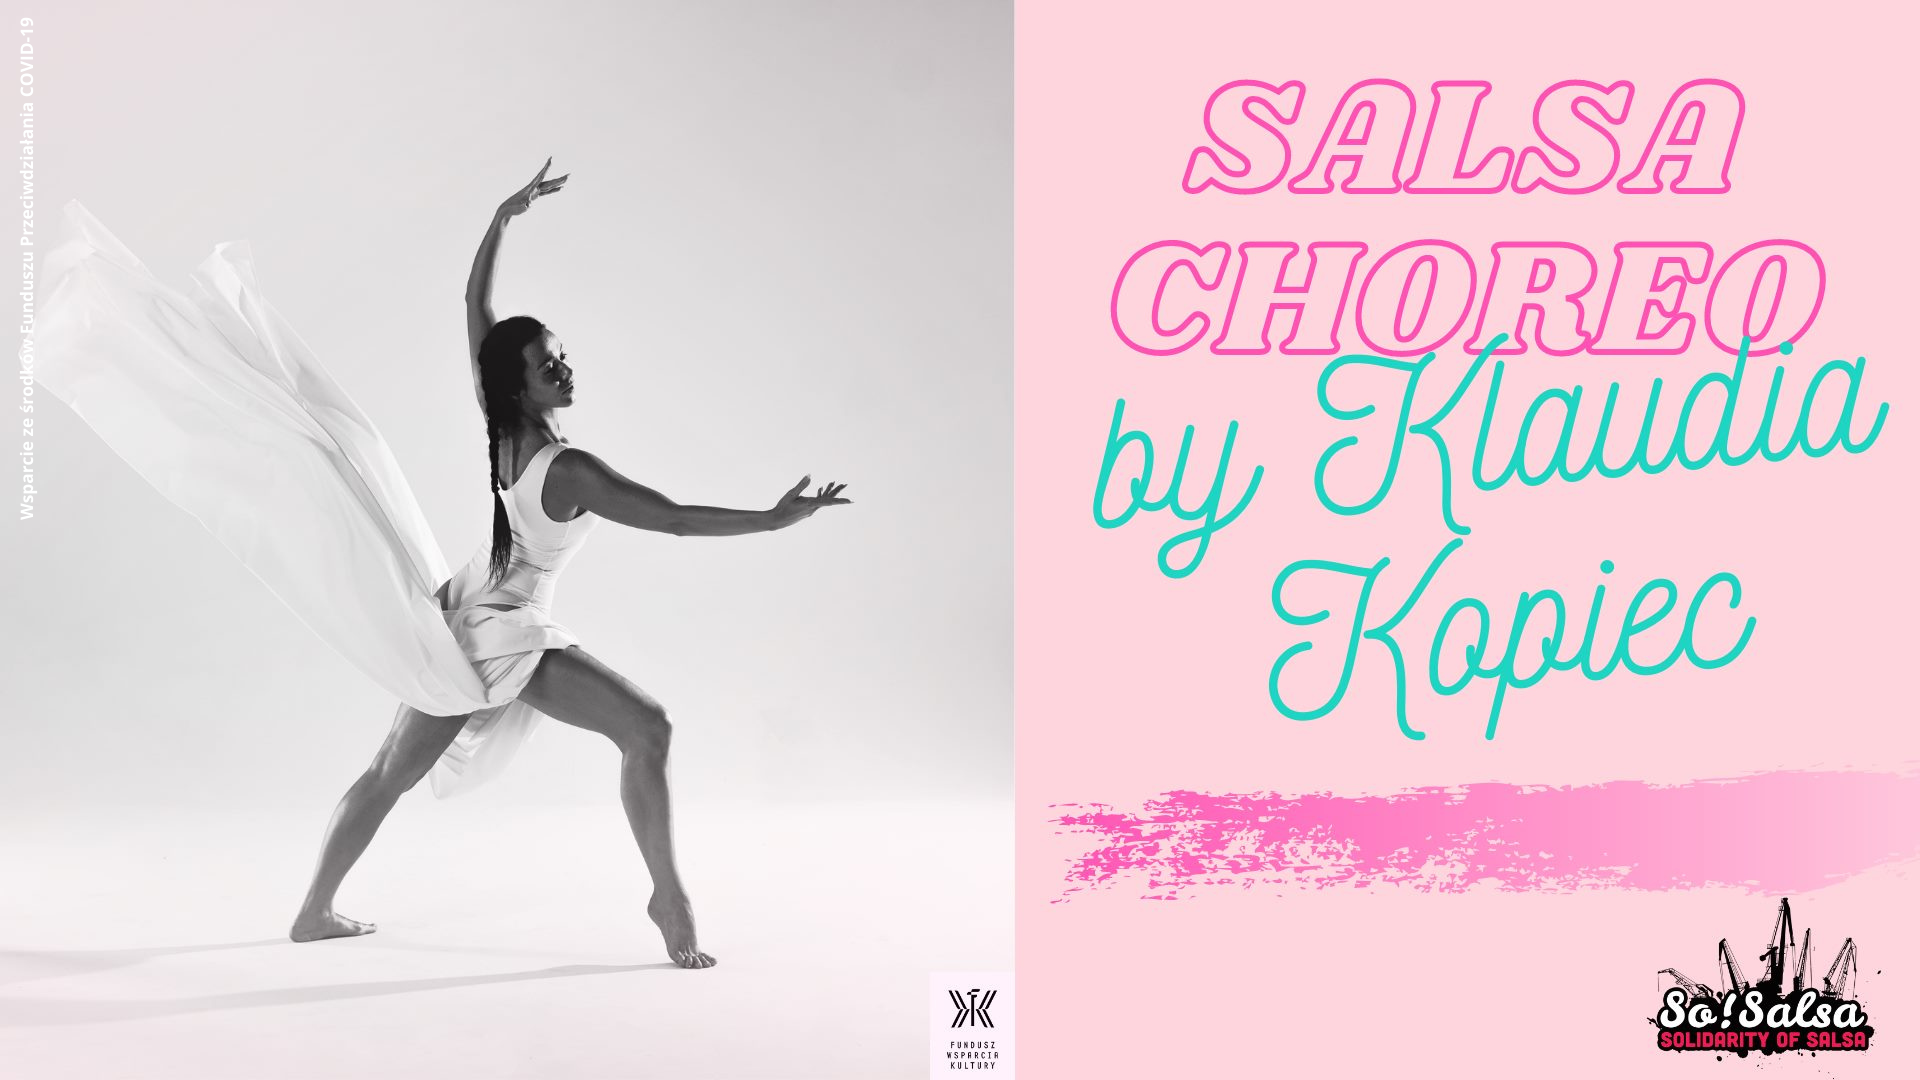 Salsa Choreo by Klaudia Kopiec - start 09/02/21